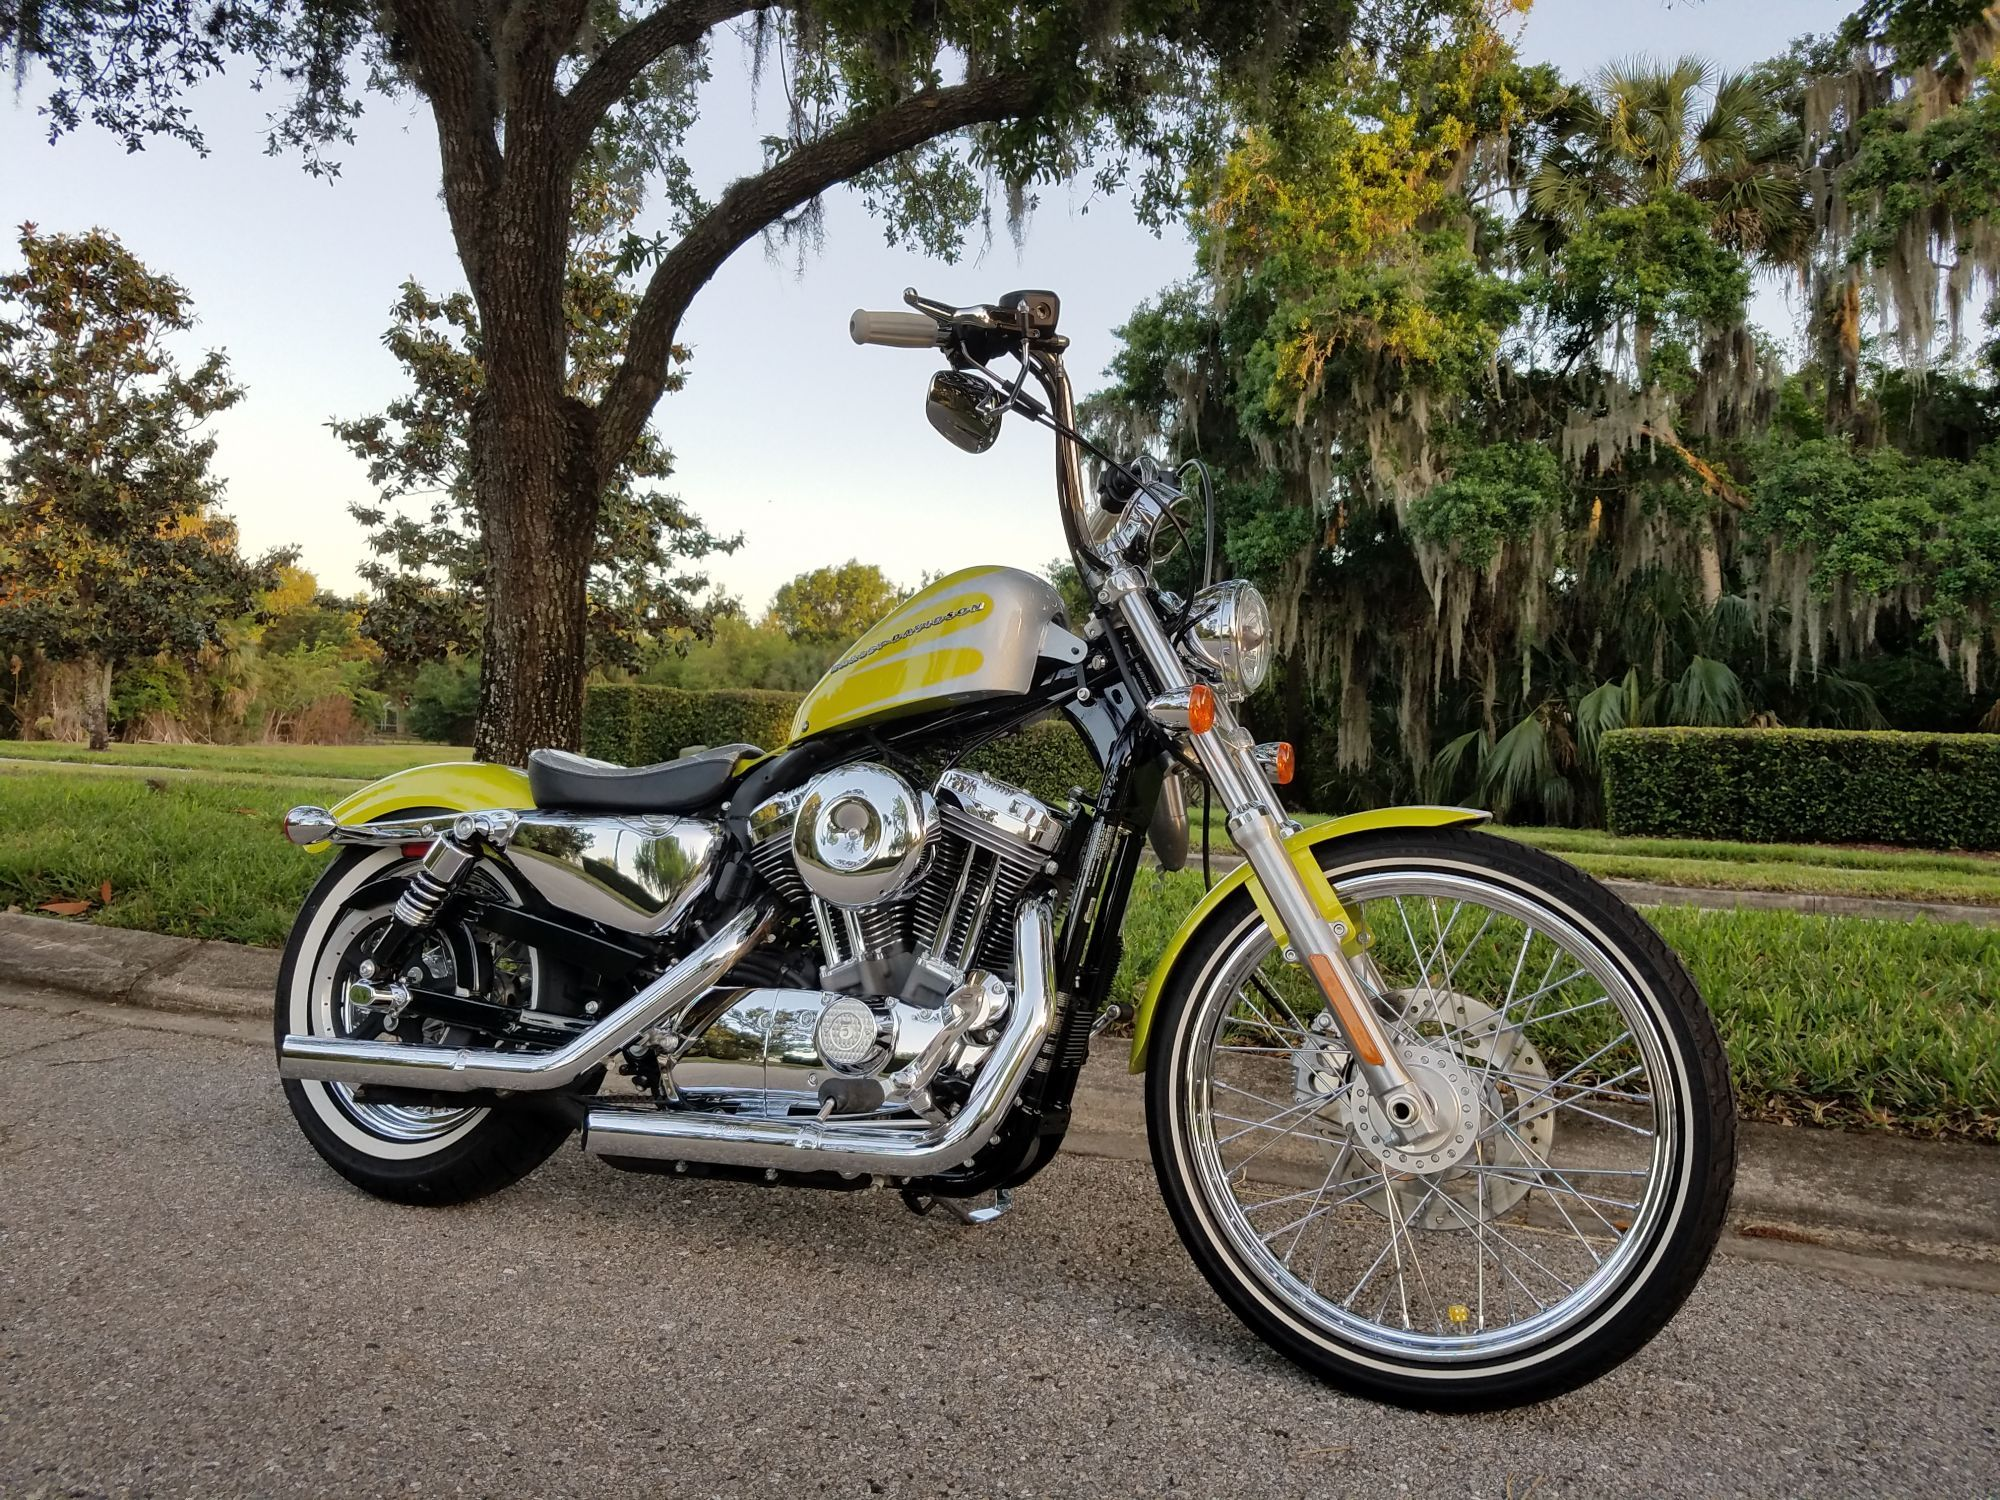 Finding 72 72 riders owners page 9 harley davidson forums